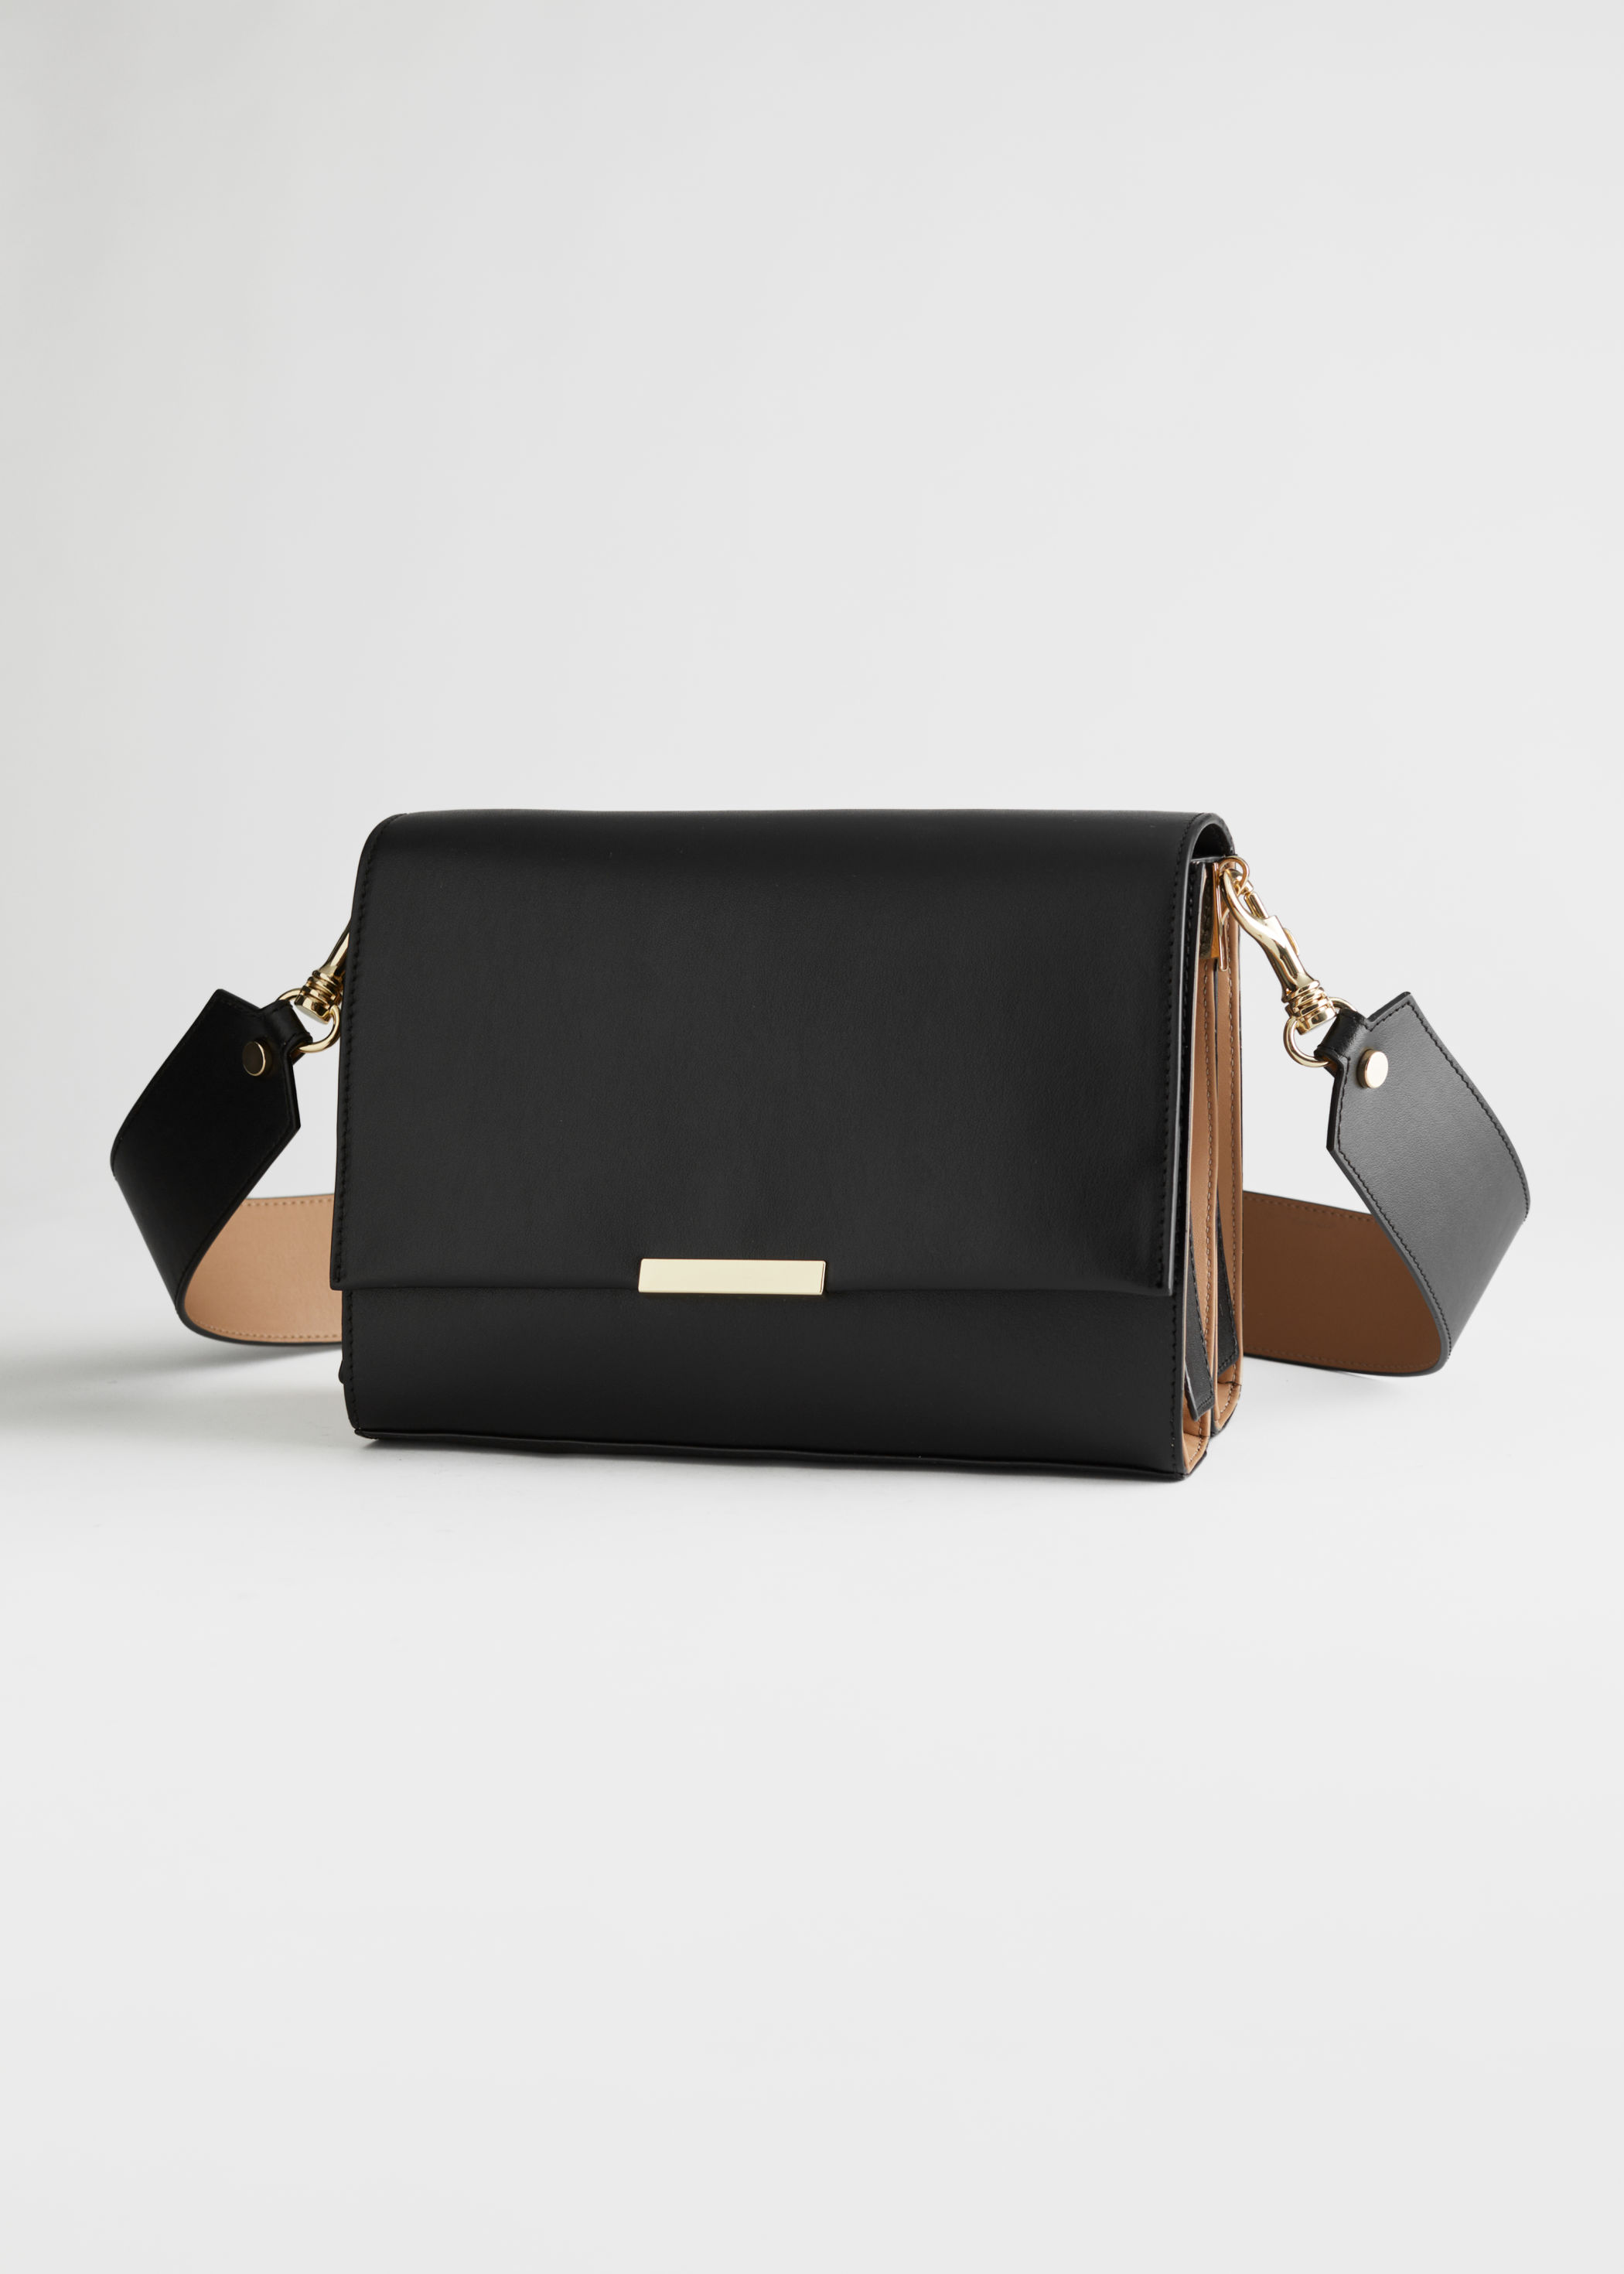 Duo Tone Leather Crossbody Bag Rejina Pyo x & Other Stories